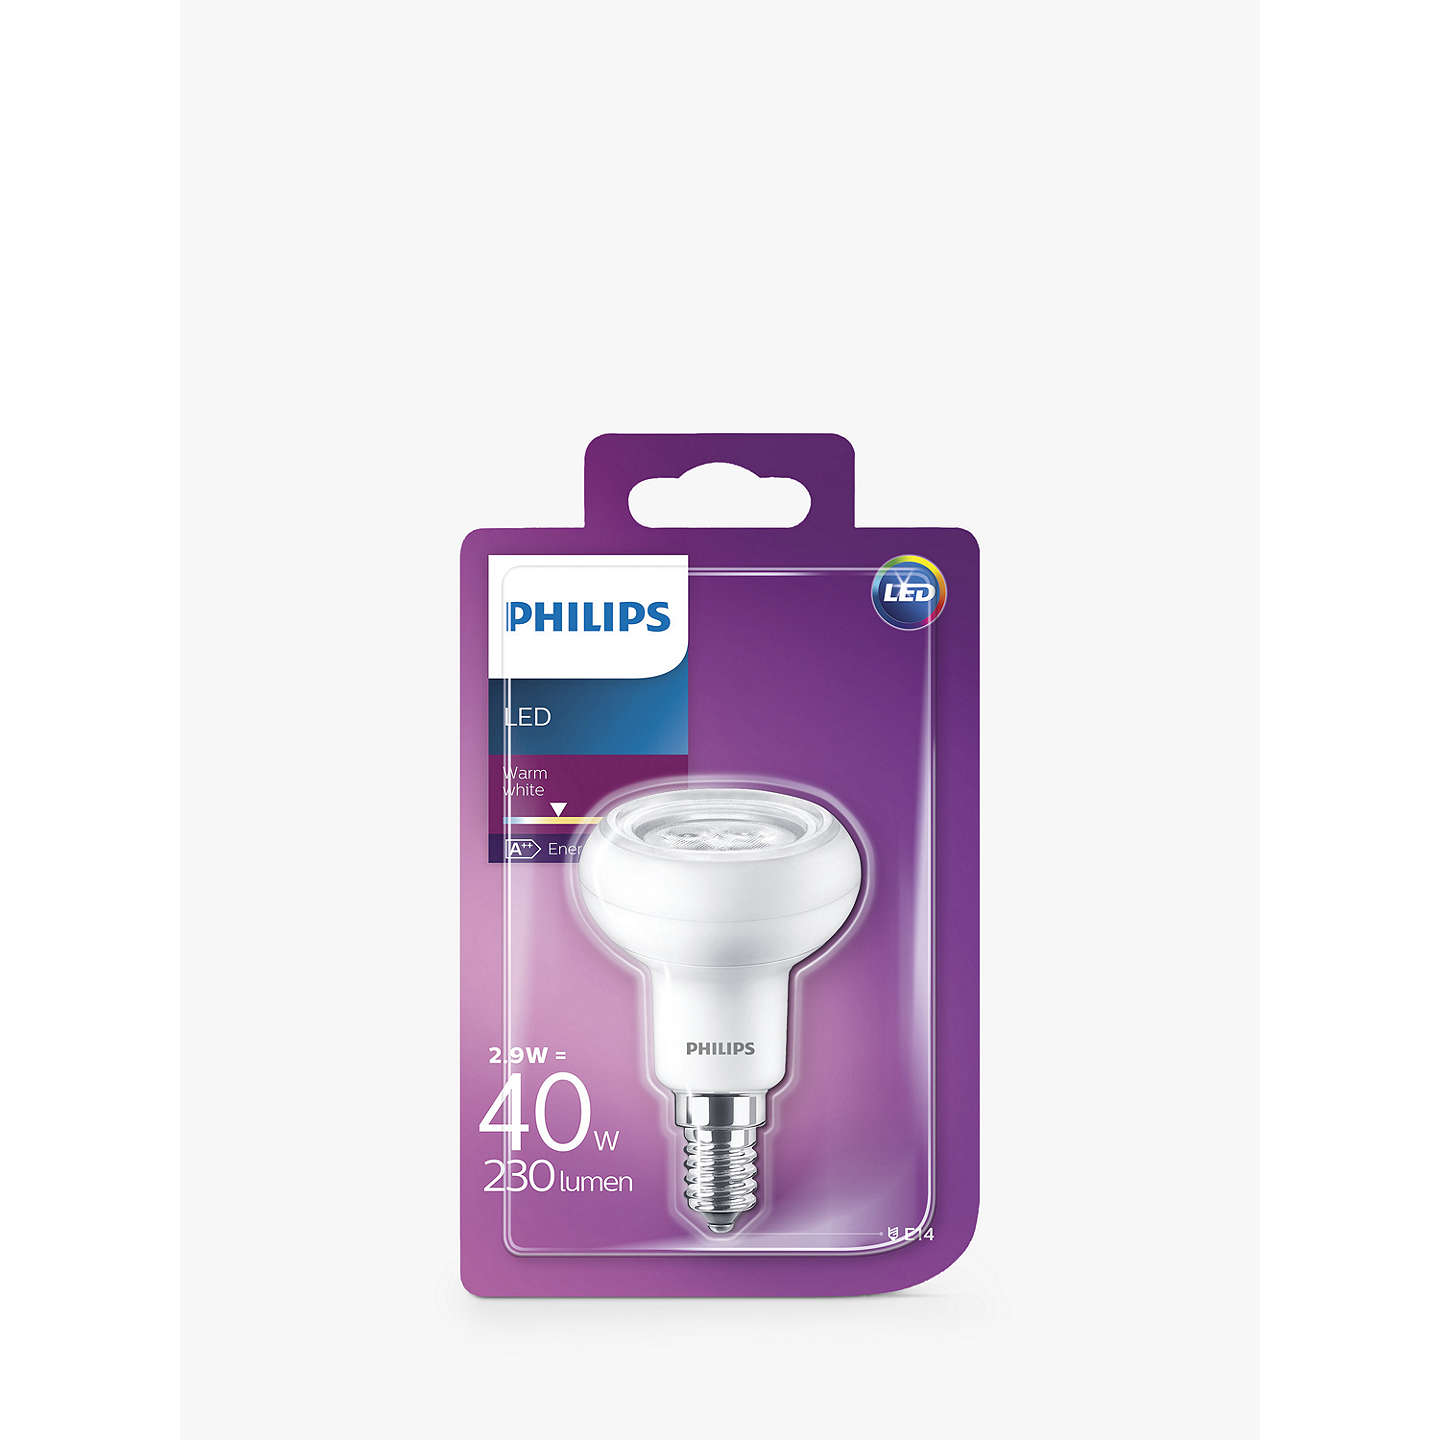 BuyPhilips LED 2.9W SES LED Reflector R50 Light Bulb Online at johnlewis.com